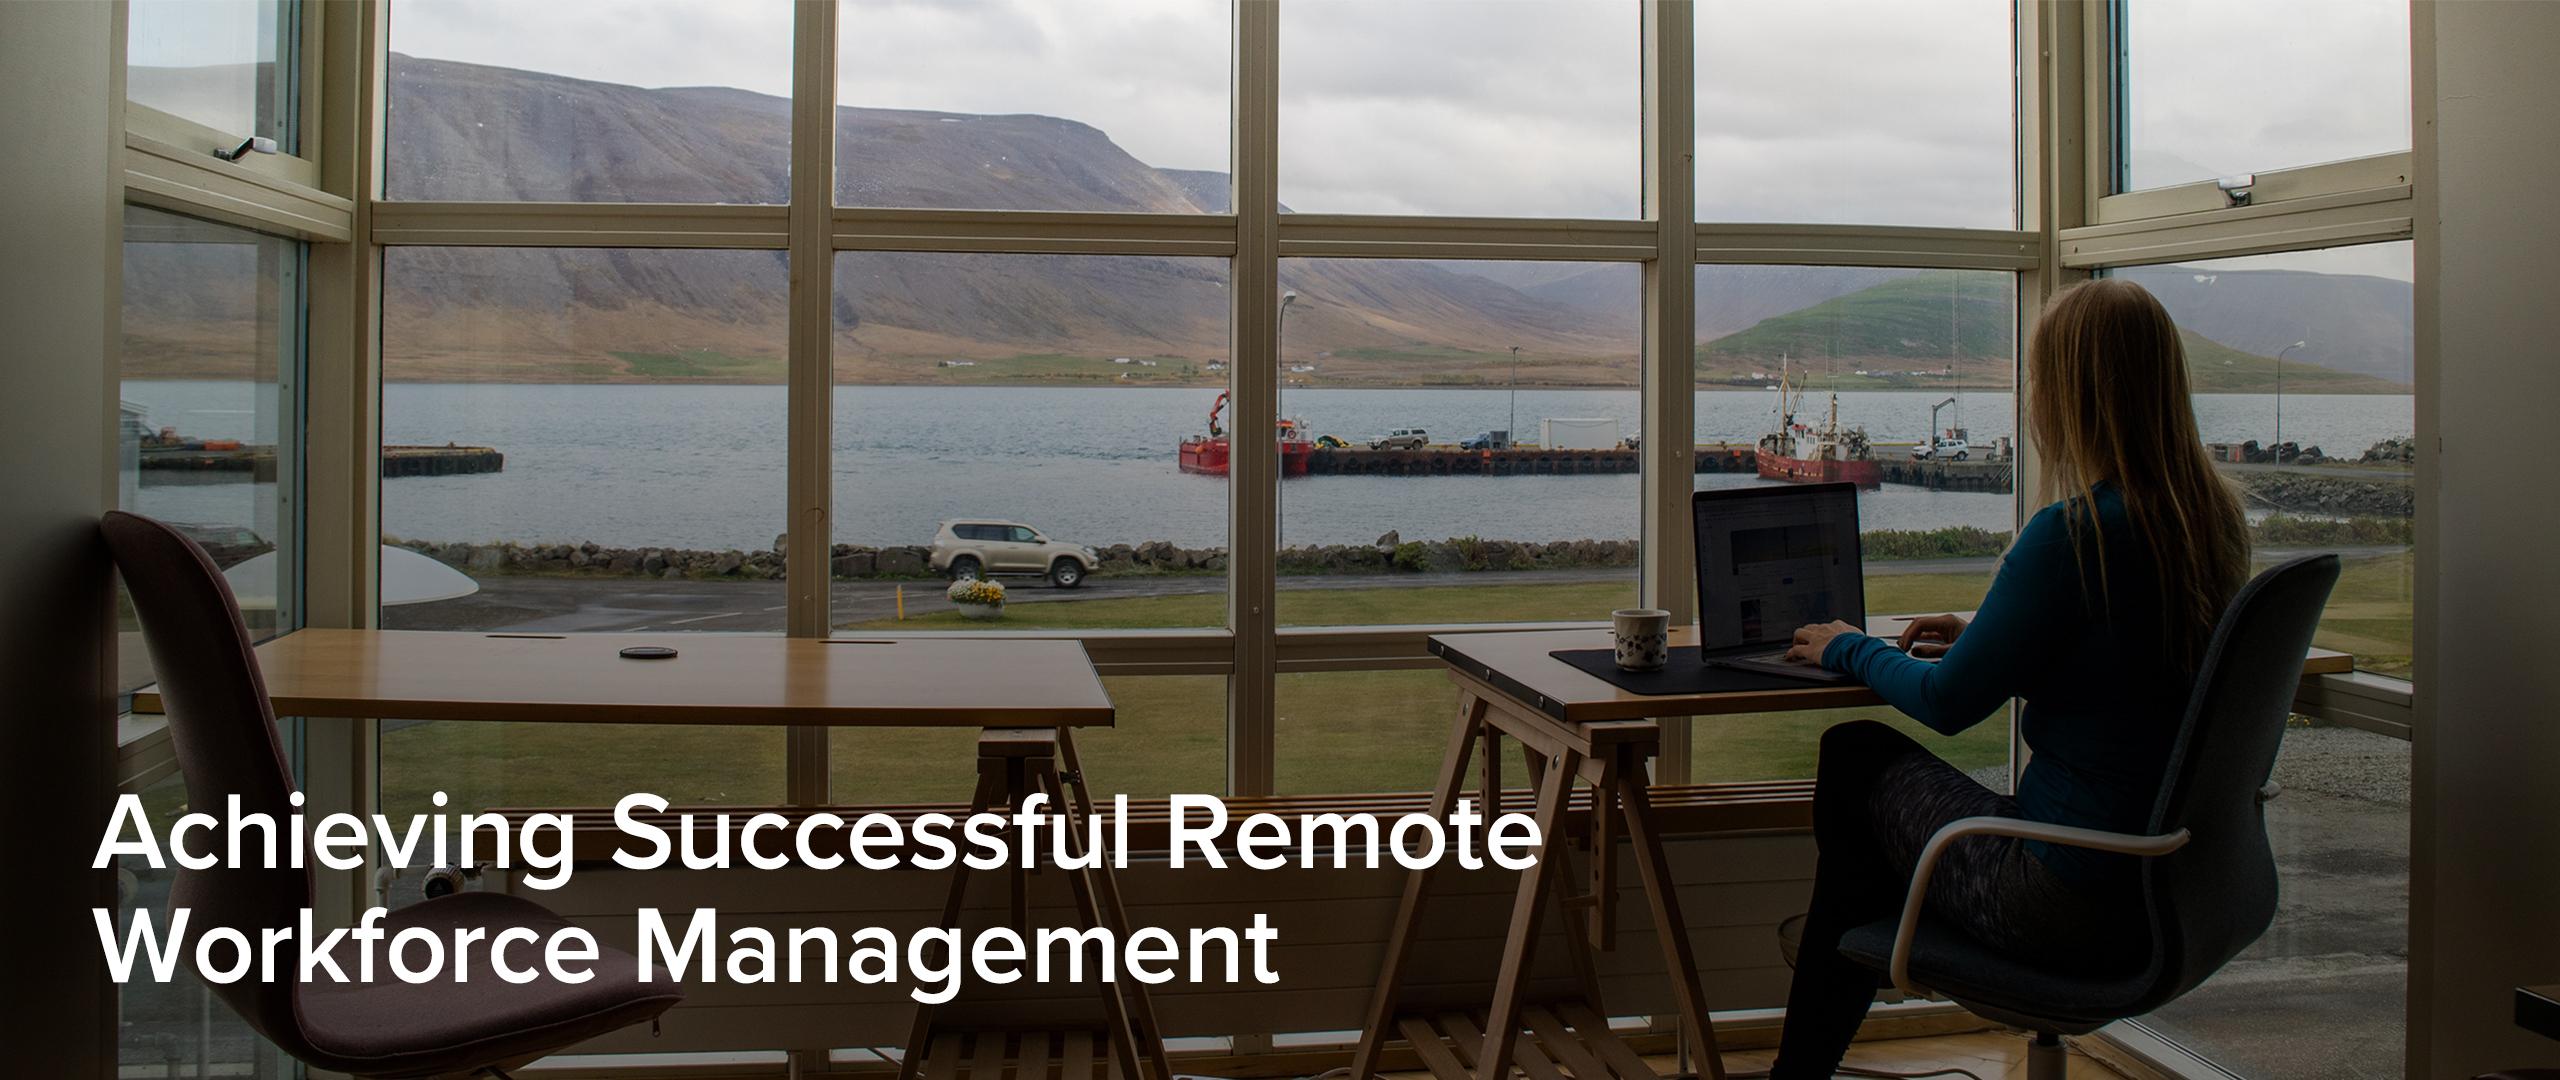 Reality of Managing a Remote Workforce